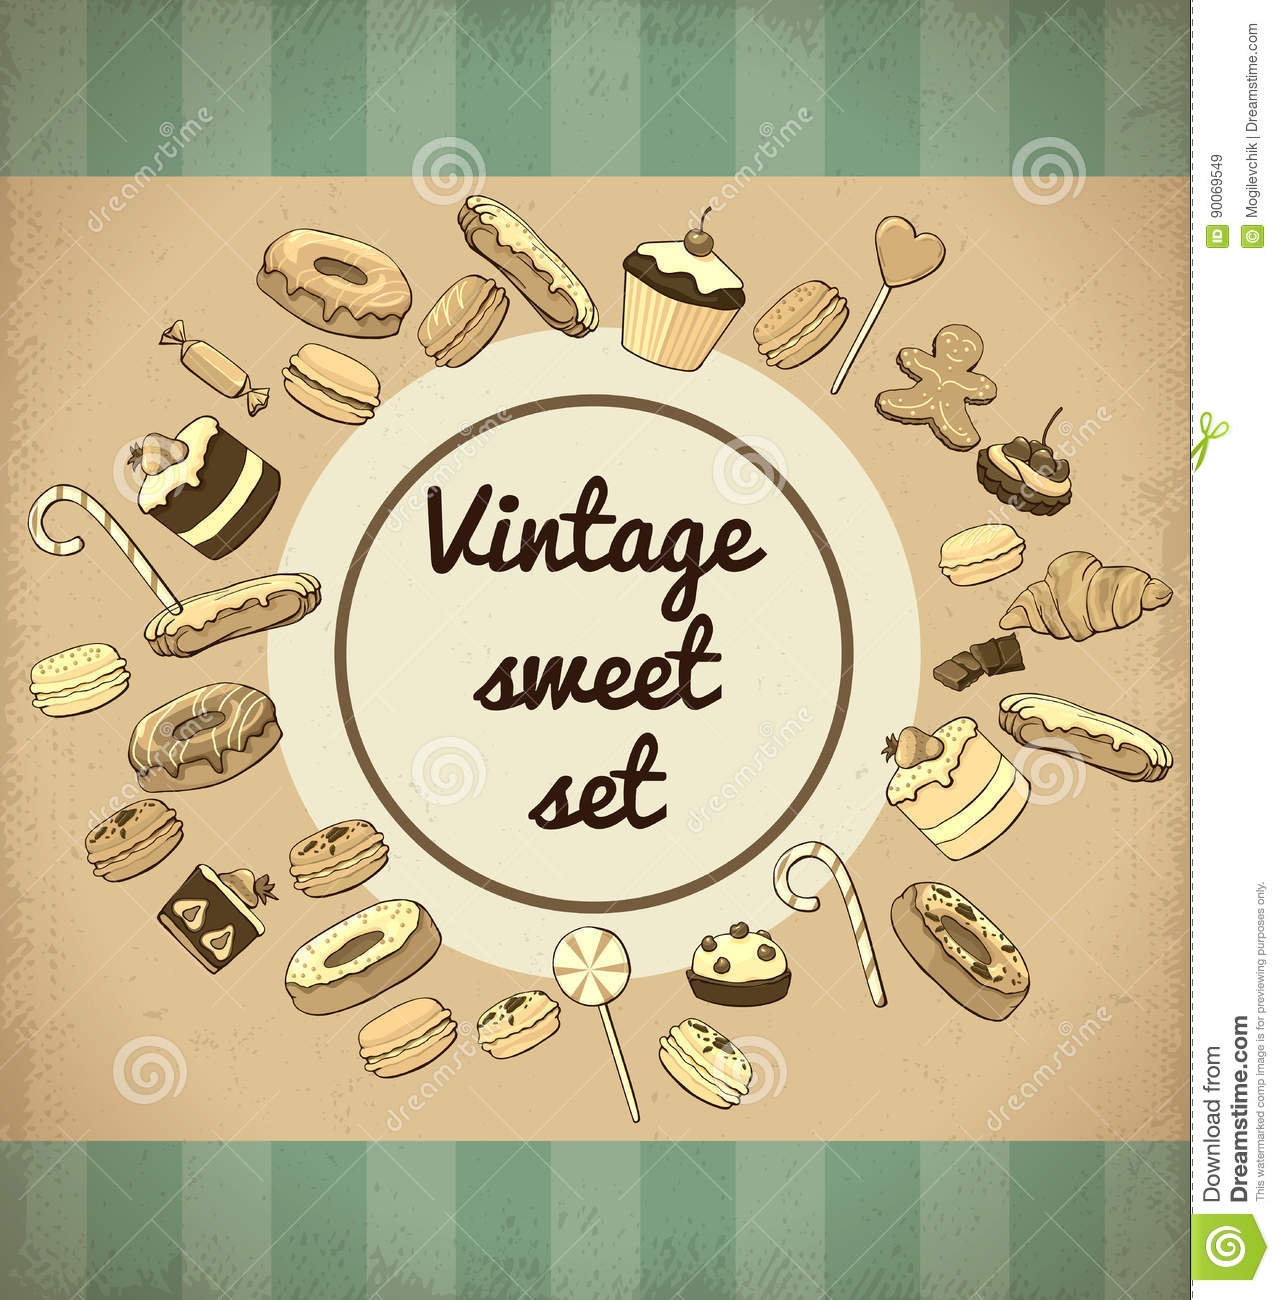 Vintage Sweet Products And Desserts Template With Donuts Candies Lollipops Macaroons Croissant Cookie Cake Muffin Chocolate Bars Vector Illustration